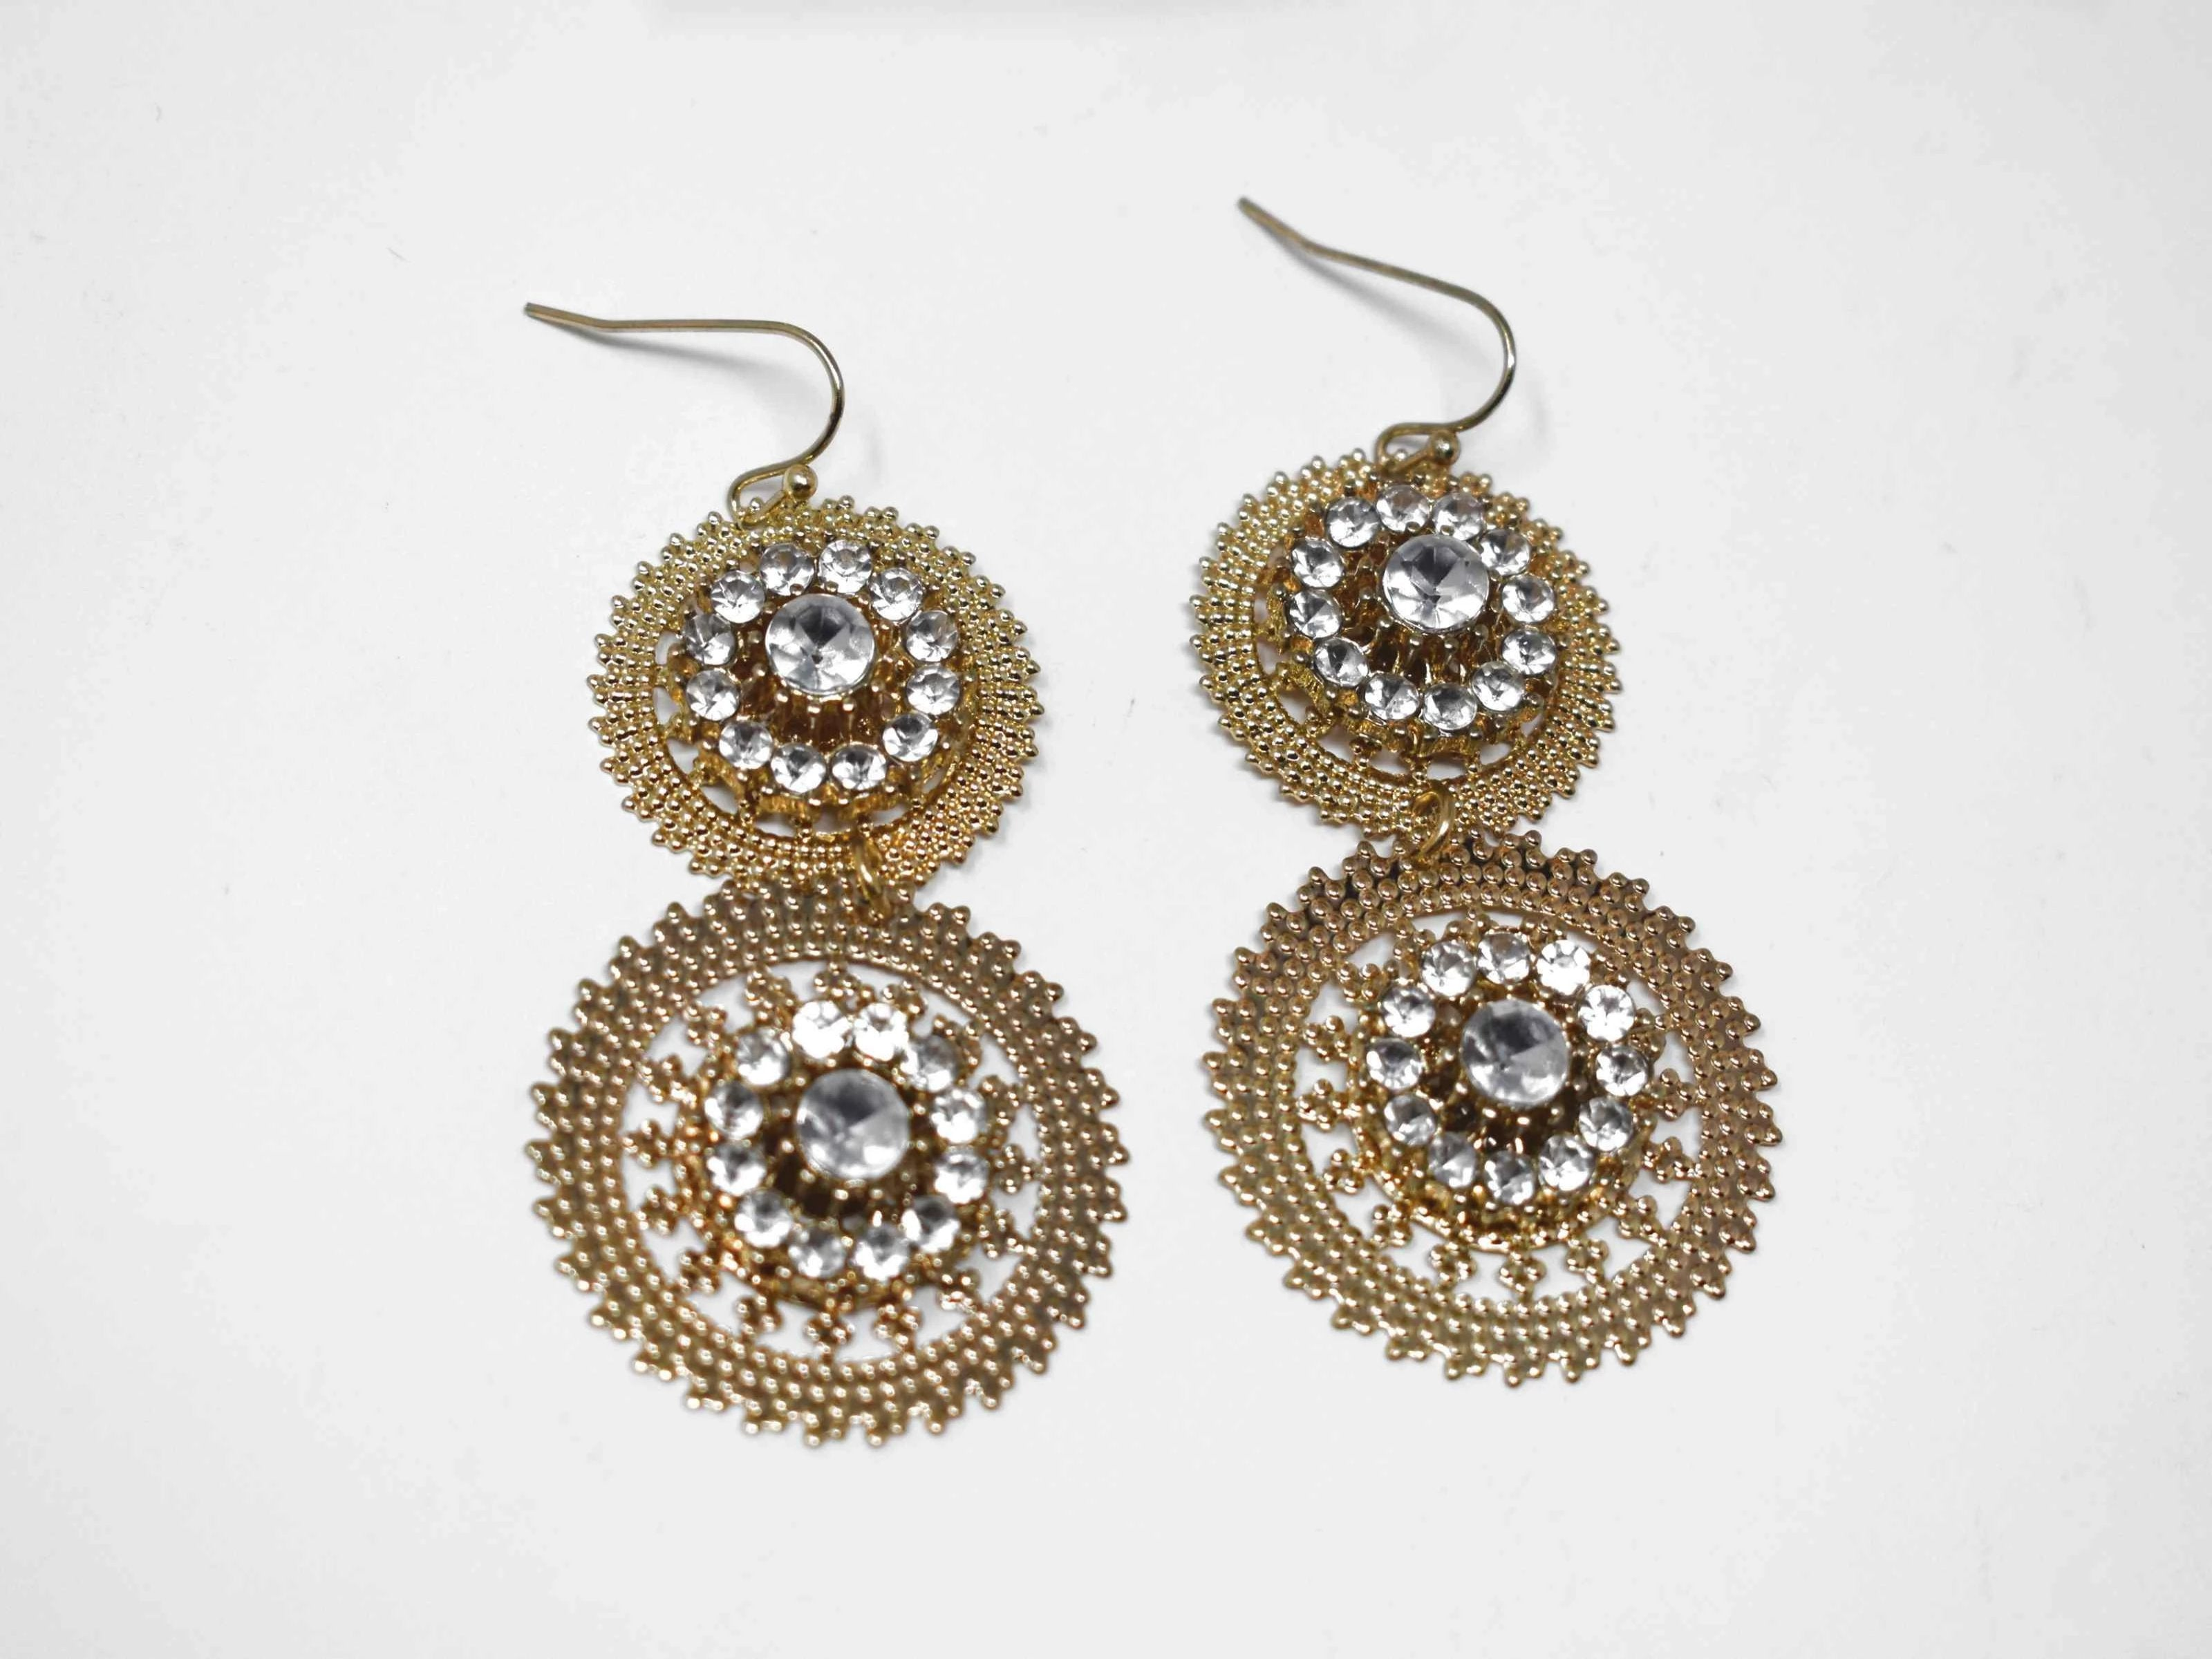 "Our Aster is a chic gold tone drop dangle style earring accented with clear stones. It measures around 2 1/2"" in length."